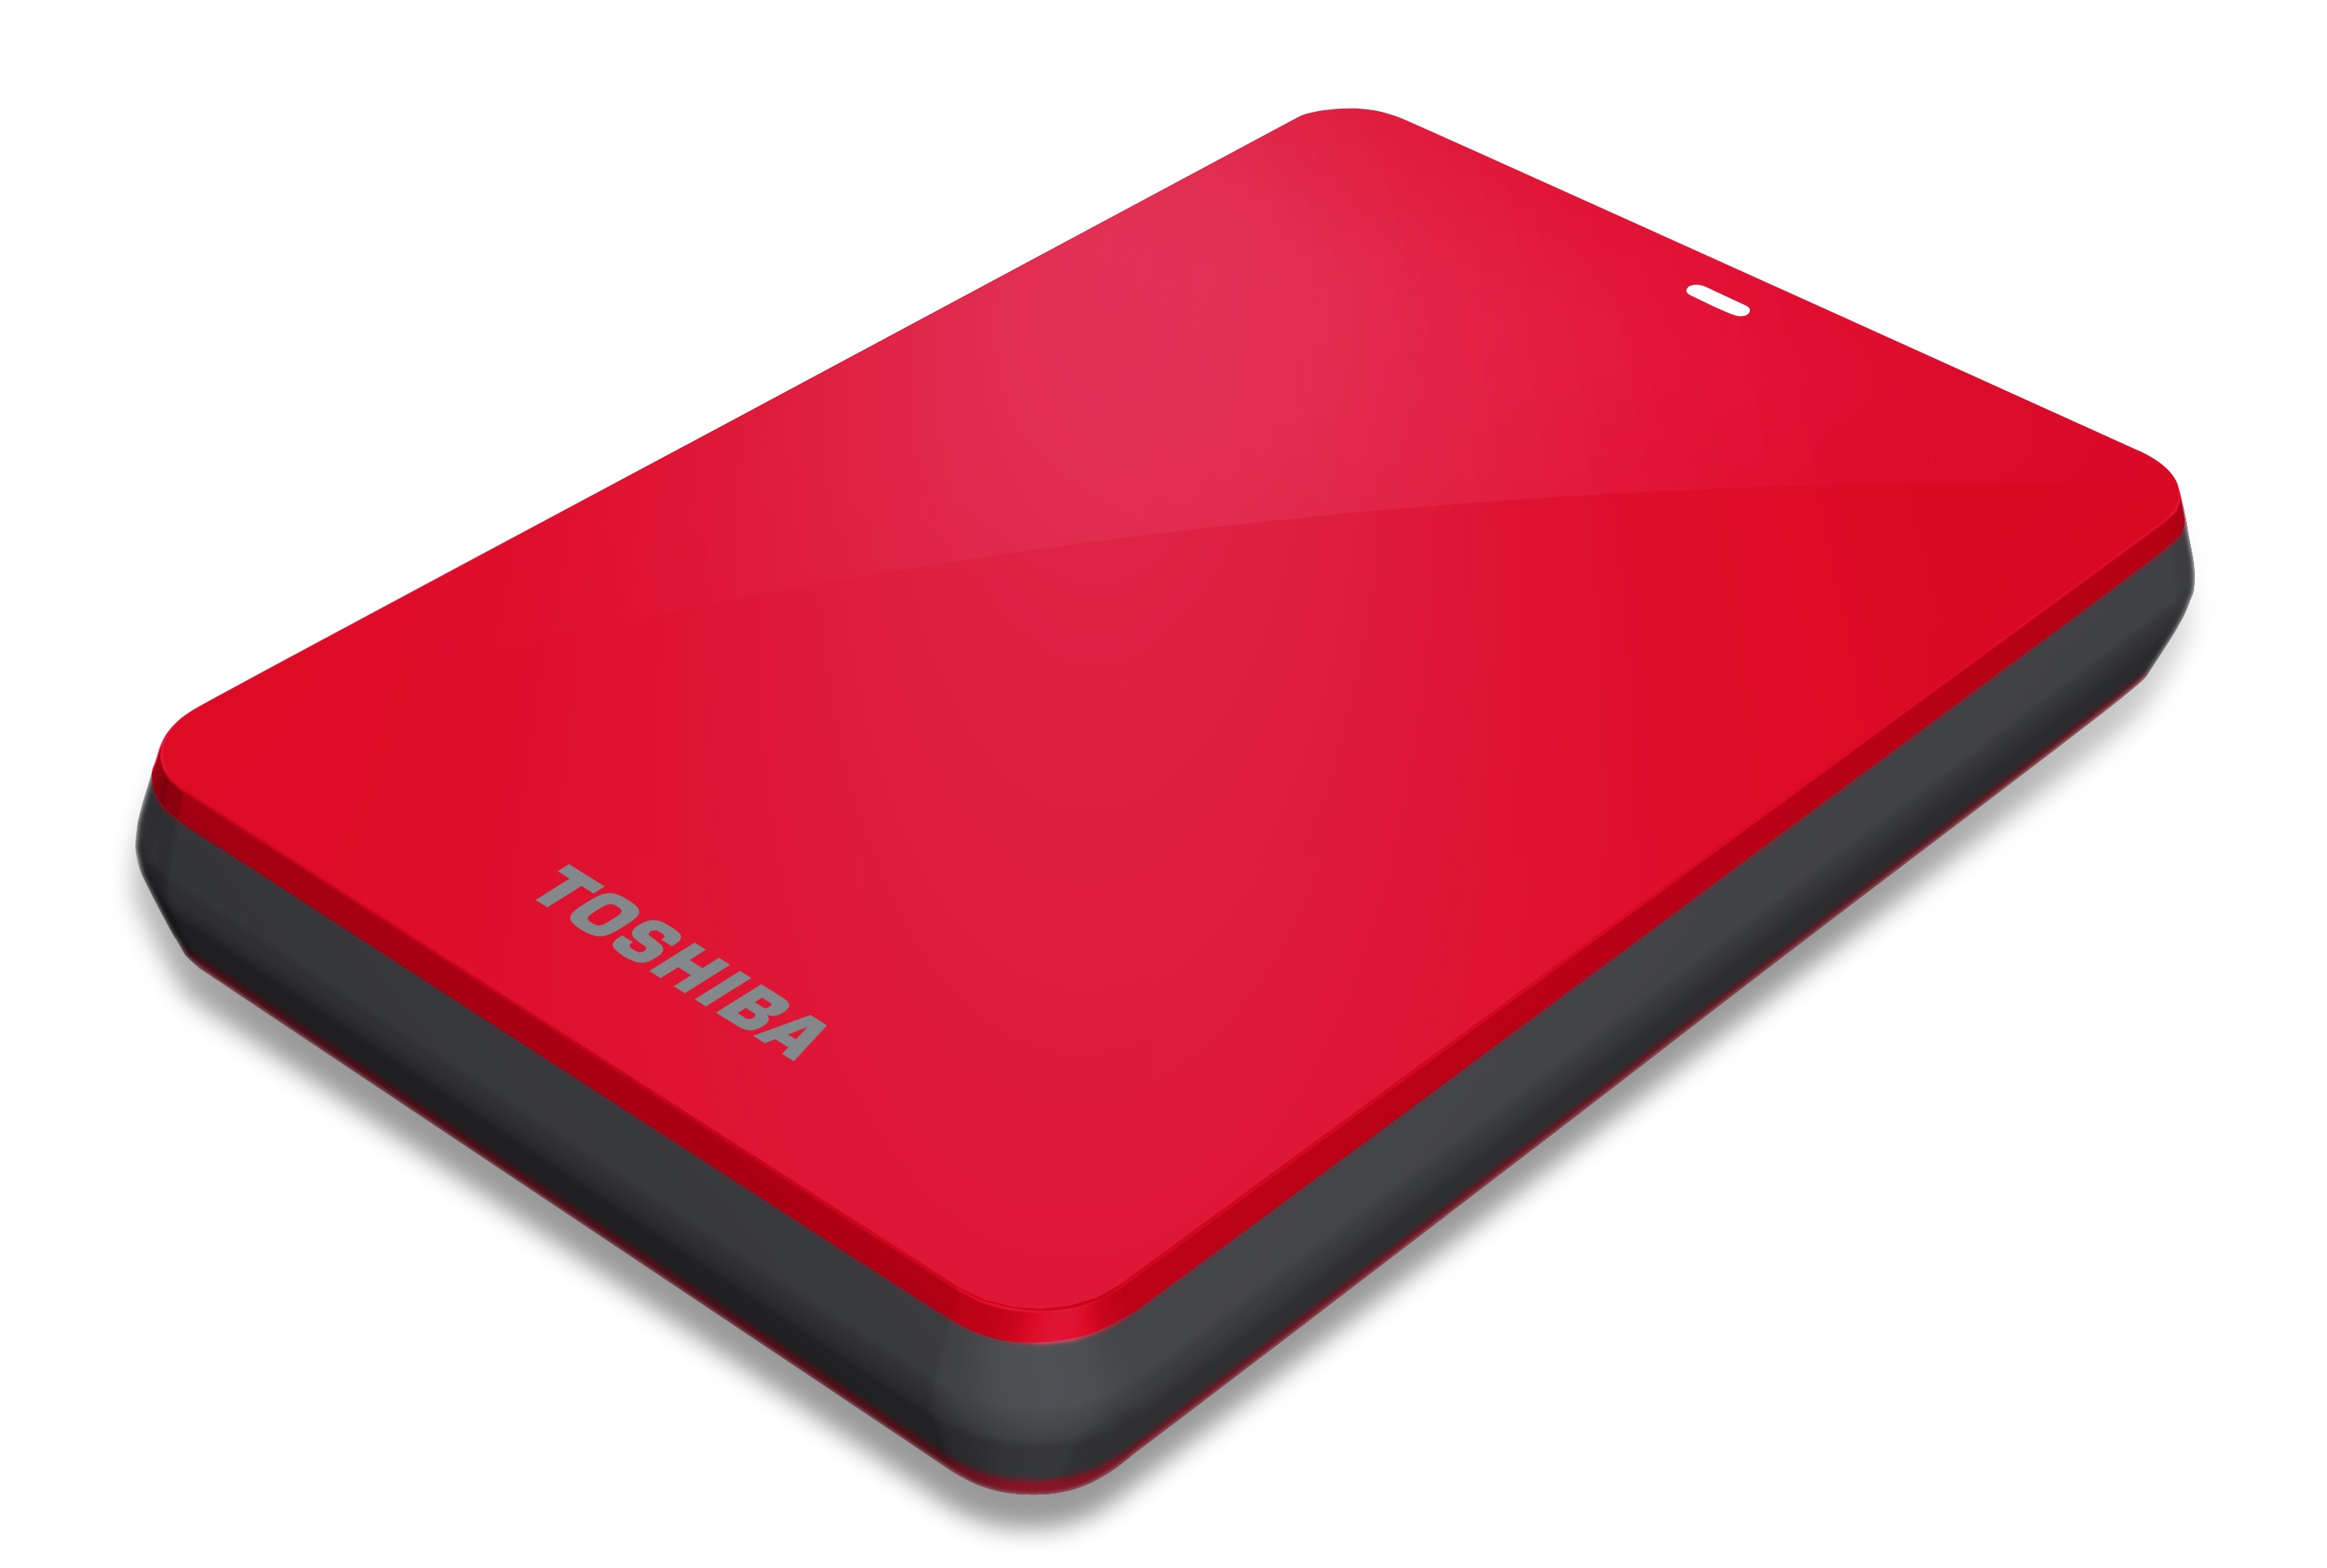 Toshiba Canvio 3.0 HDD in red